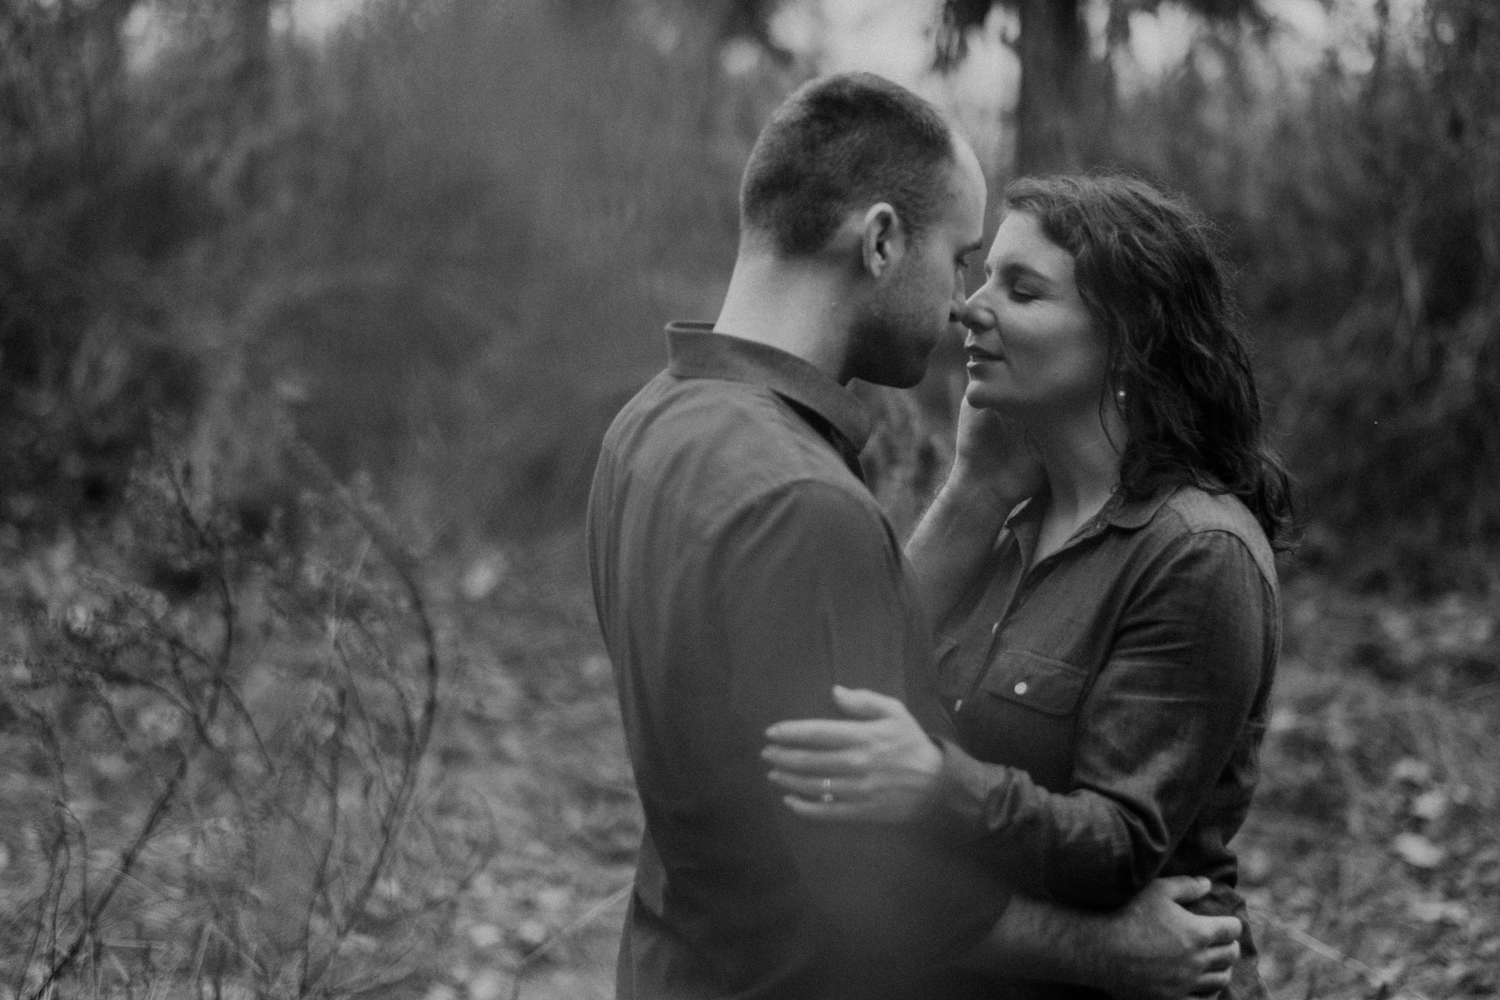 harpers ferry maryland heights romantic engagement photo